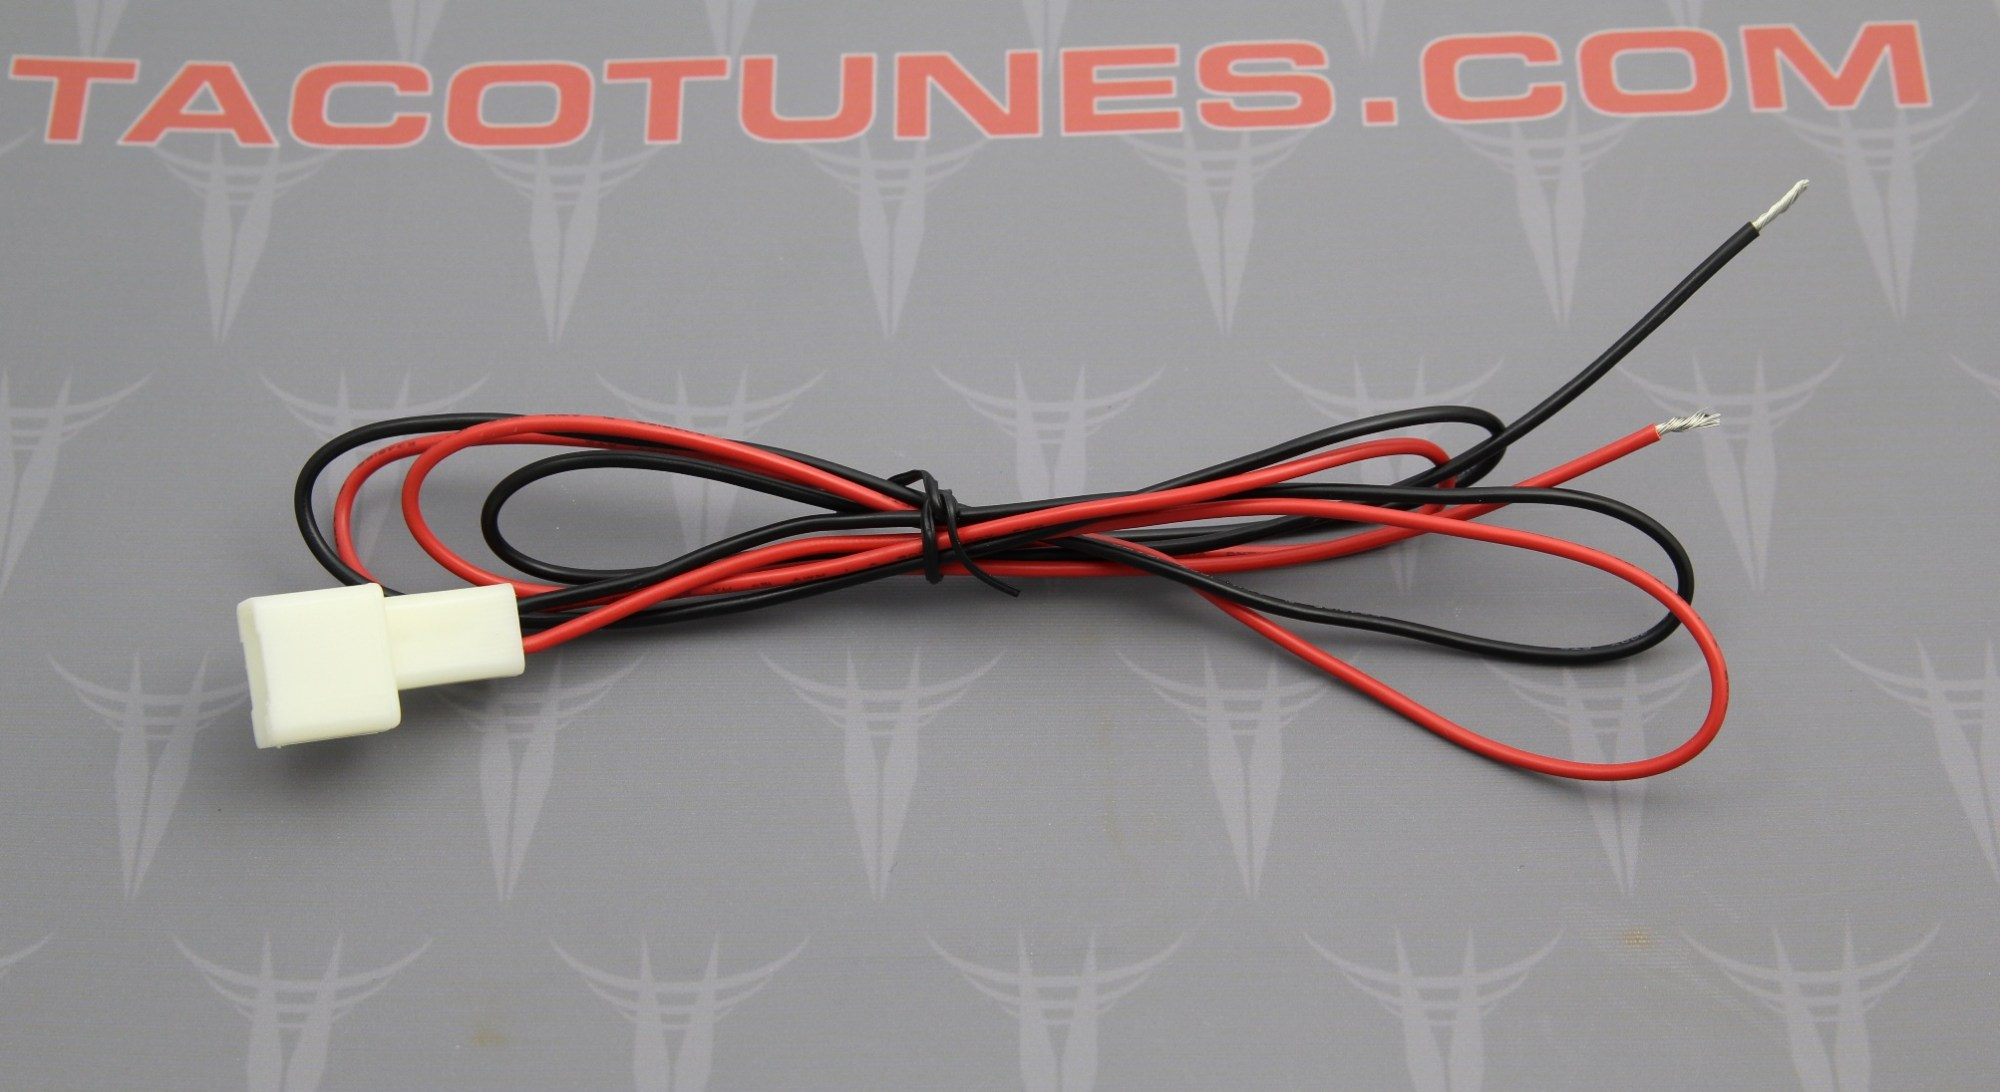 hight resolution of fj cruiser aftermarket speaker harness adapters speaker wiring harness adapter connector taco tunes toyota audio